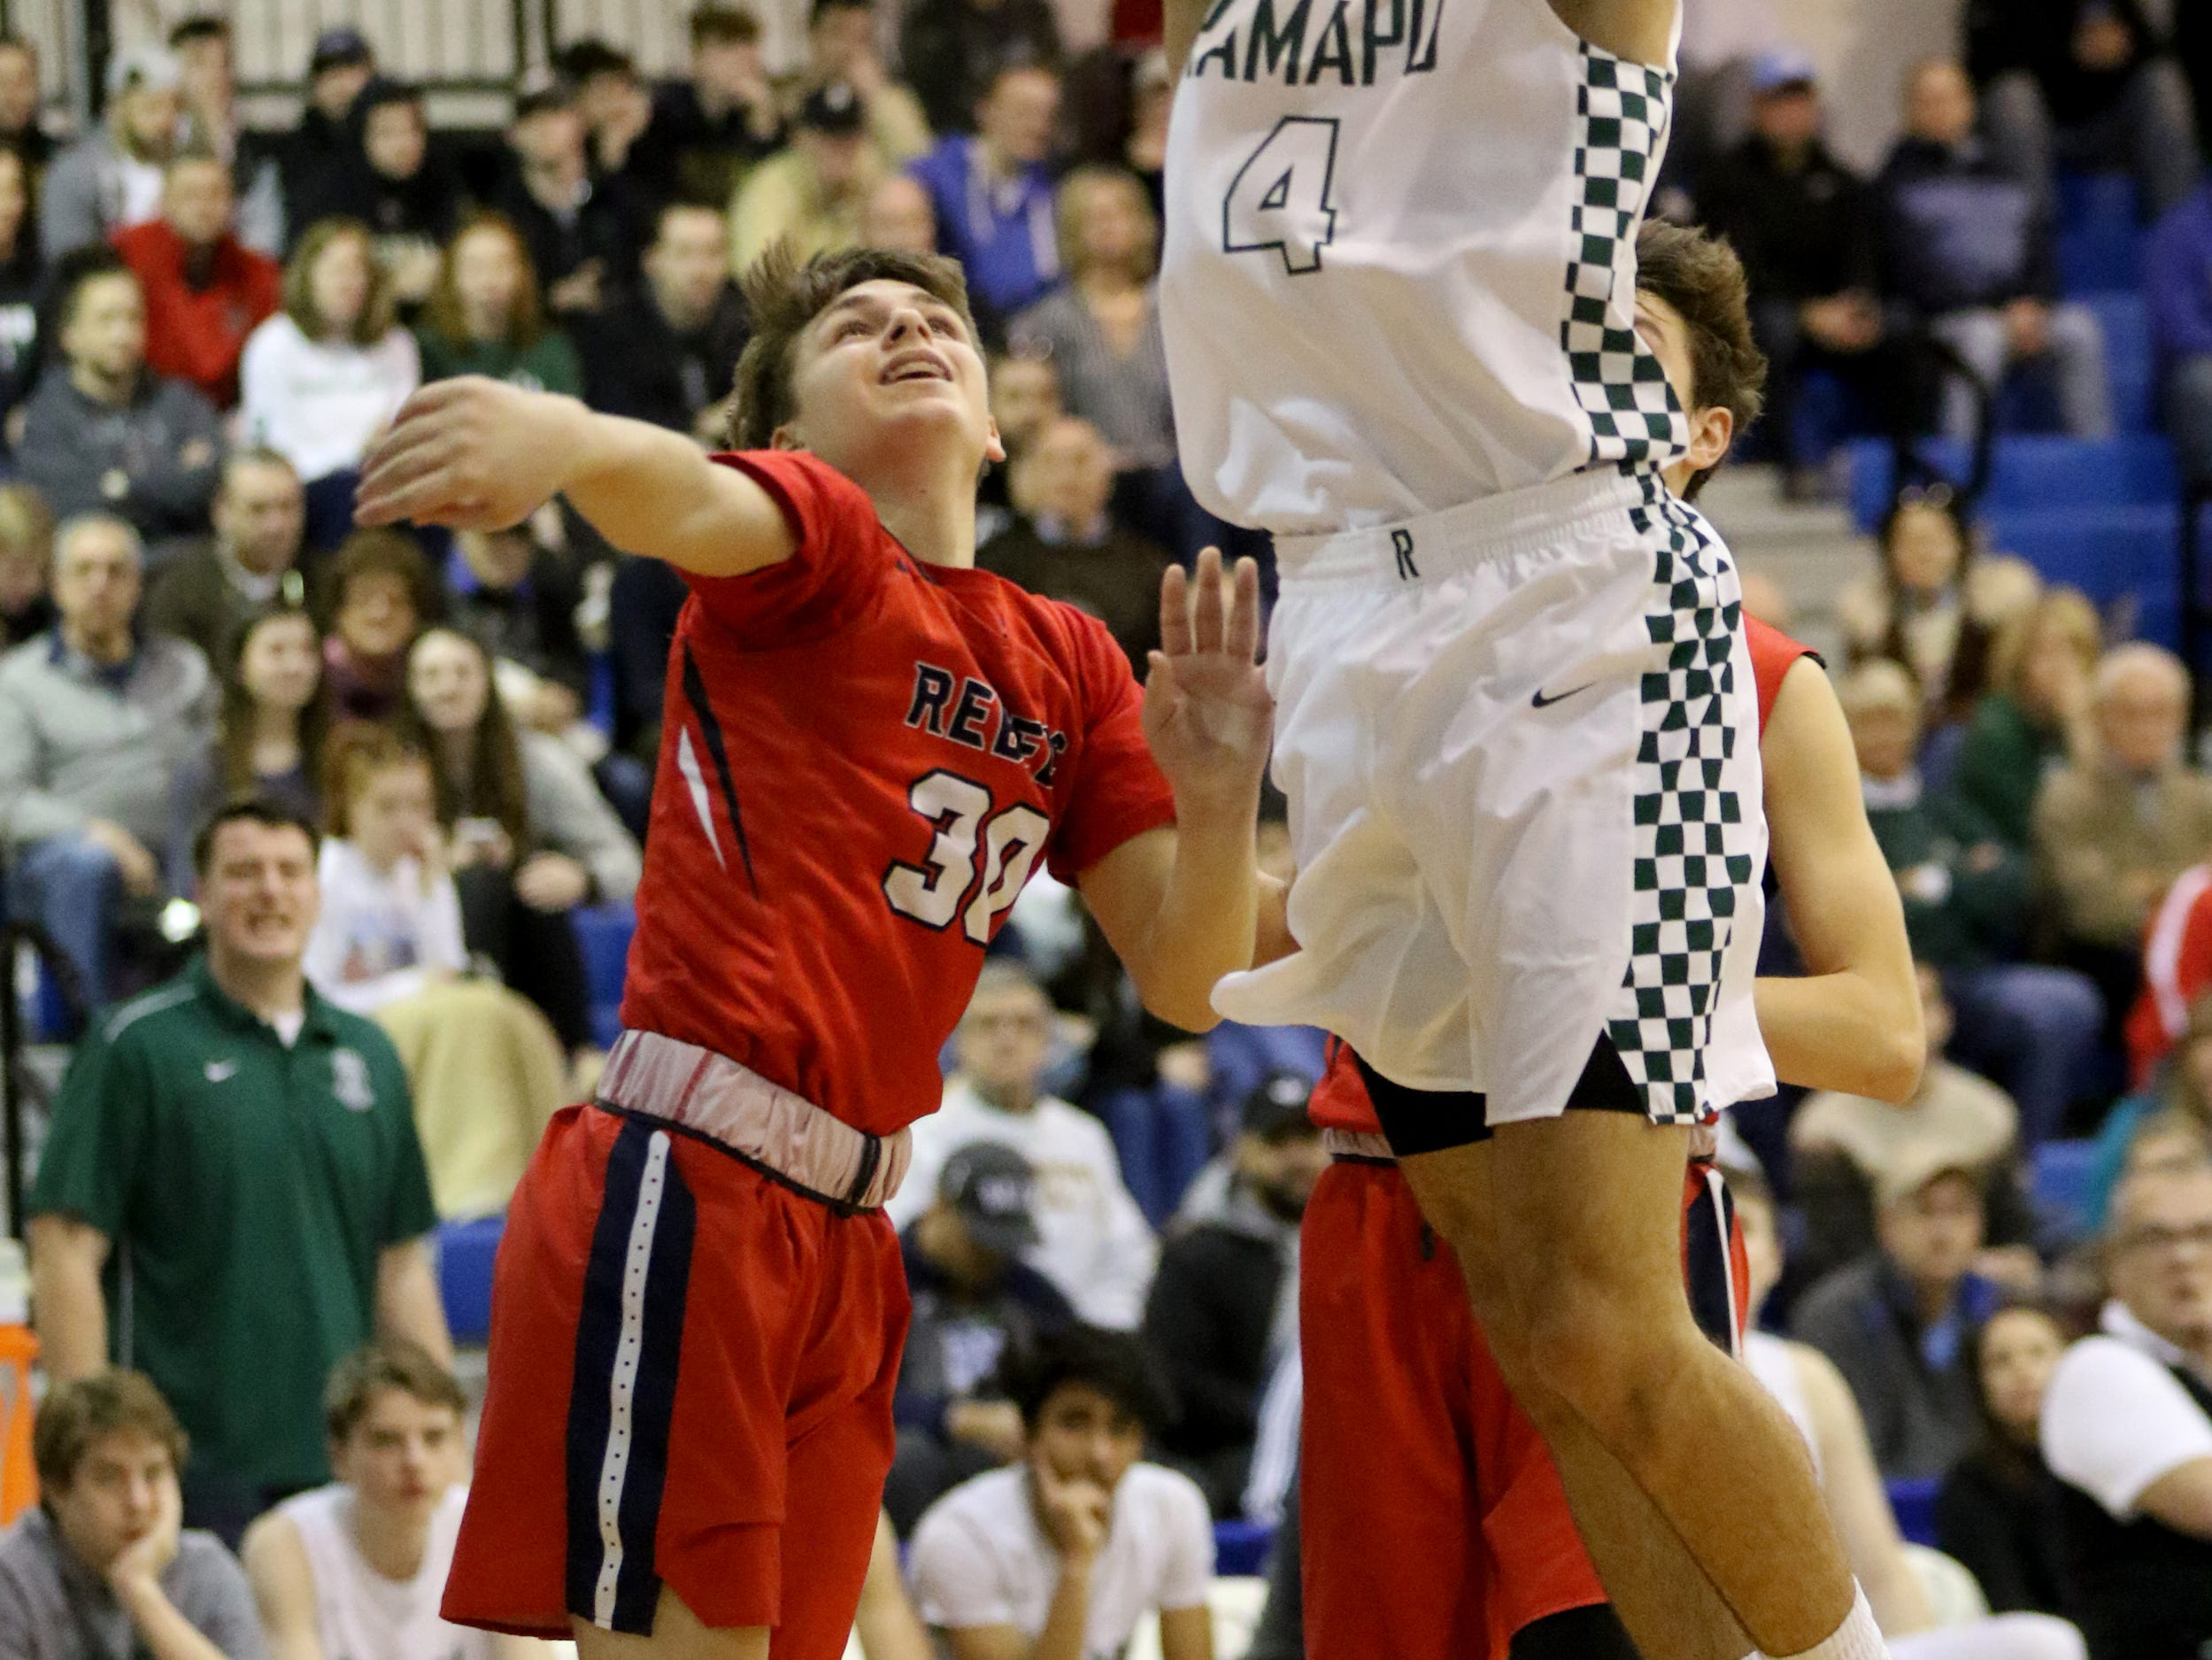 Max Pernetti, of Ramapo, goes up for a basket against Ryan Cassels, of Saddle River Day.  The Raiders won the Bergen County Jamboree game, 78-60. Sunday, February 10, 2019